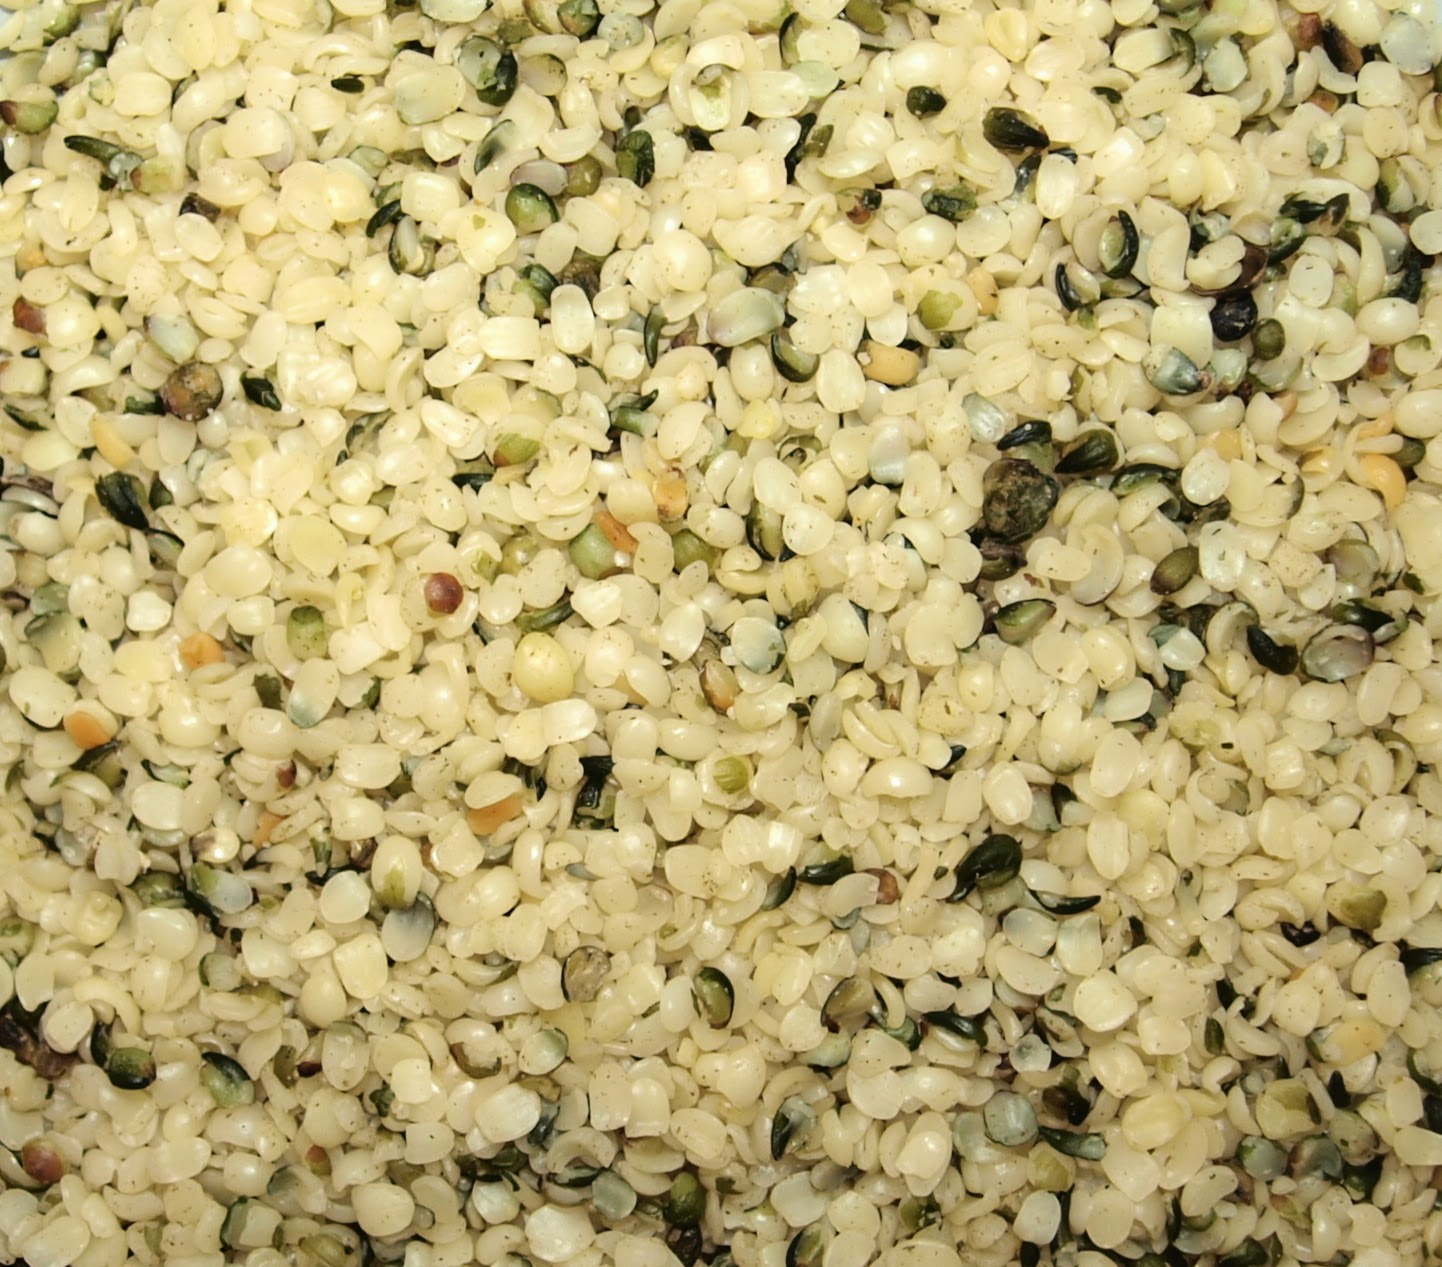 An image of hemp seed without the shell (dehulled)